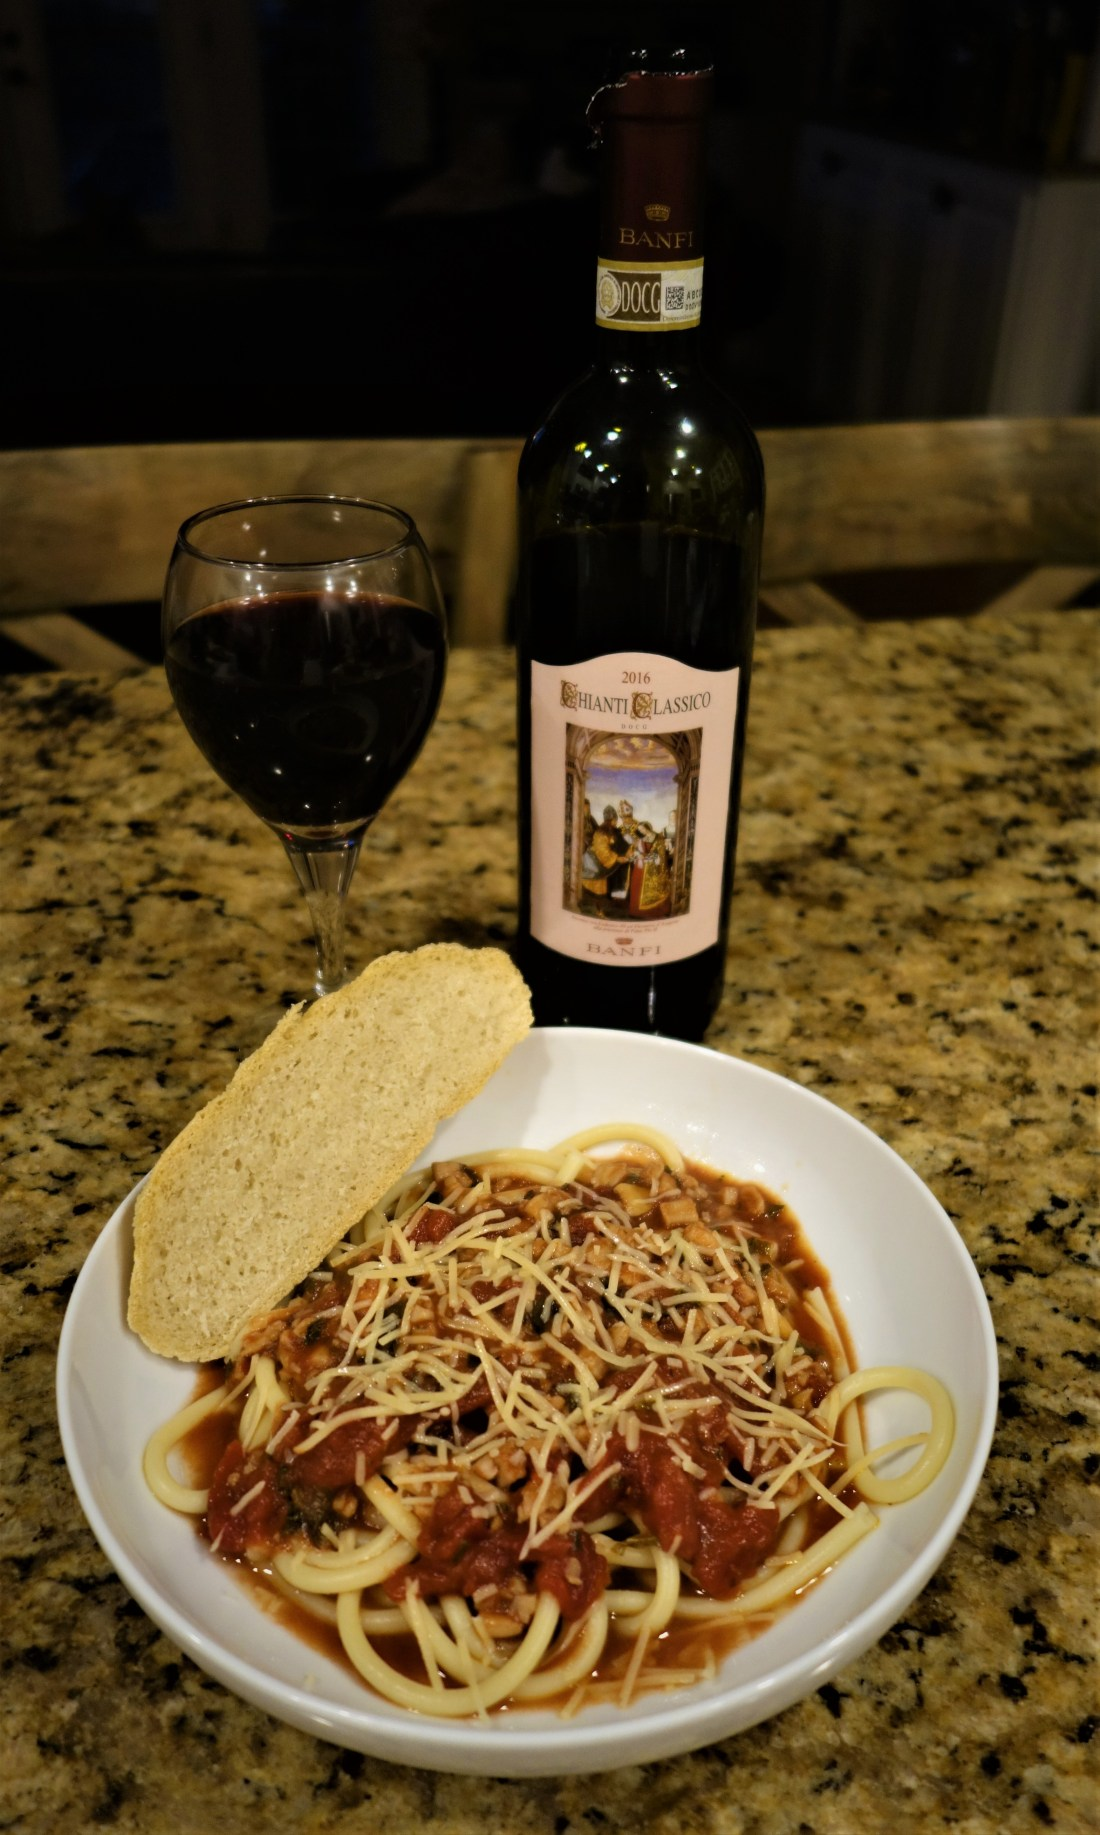 a bow of pasta with clam sauce, with a slice of Italian bread on the edge of the bowl. Behind the bowl is a glass of Chianti sitting next to a bottle of Chianti.